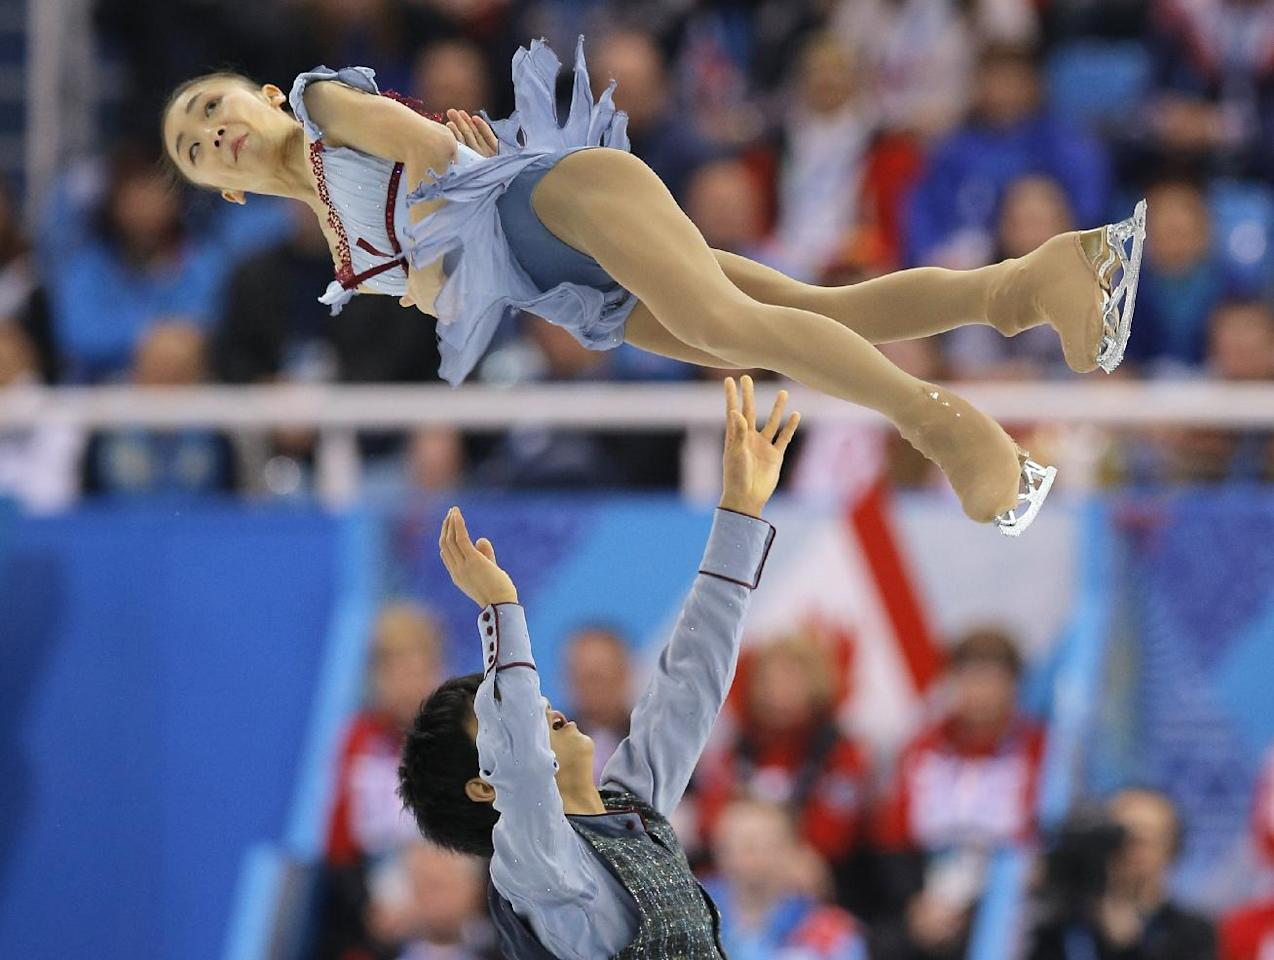 Narumi Takahashi and Ryuichi Kihara of Japan compete in the team pairs free skate figure skating competition at the Iceberg Skating Palace during the 2014 Winter Olympics, Saturday, Feb. 8, 2014, in Sochi, Russia. (AP Photo/Vadim Ghirda)